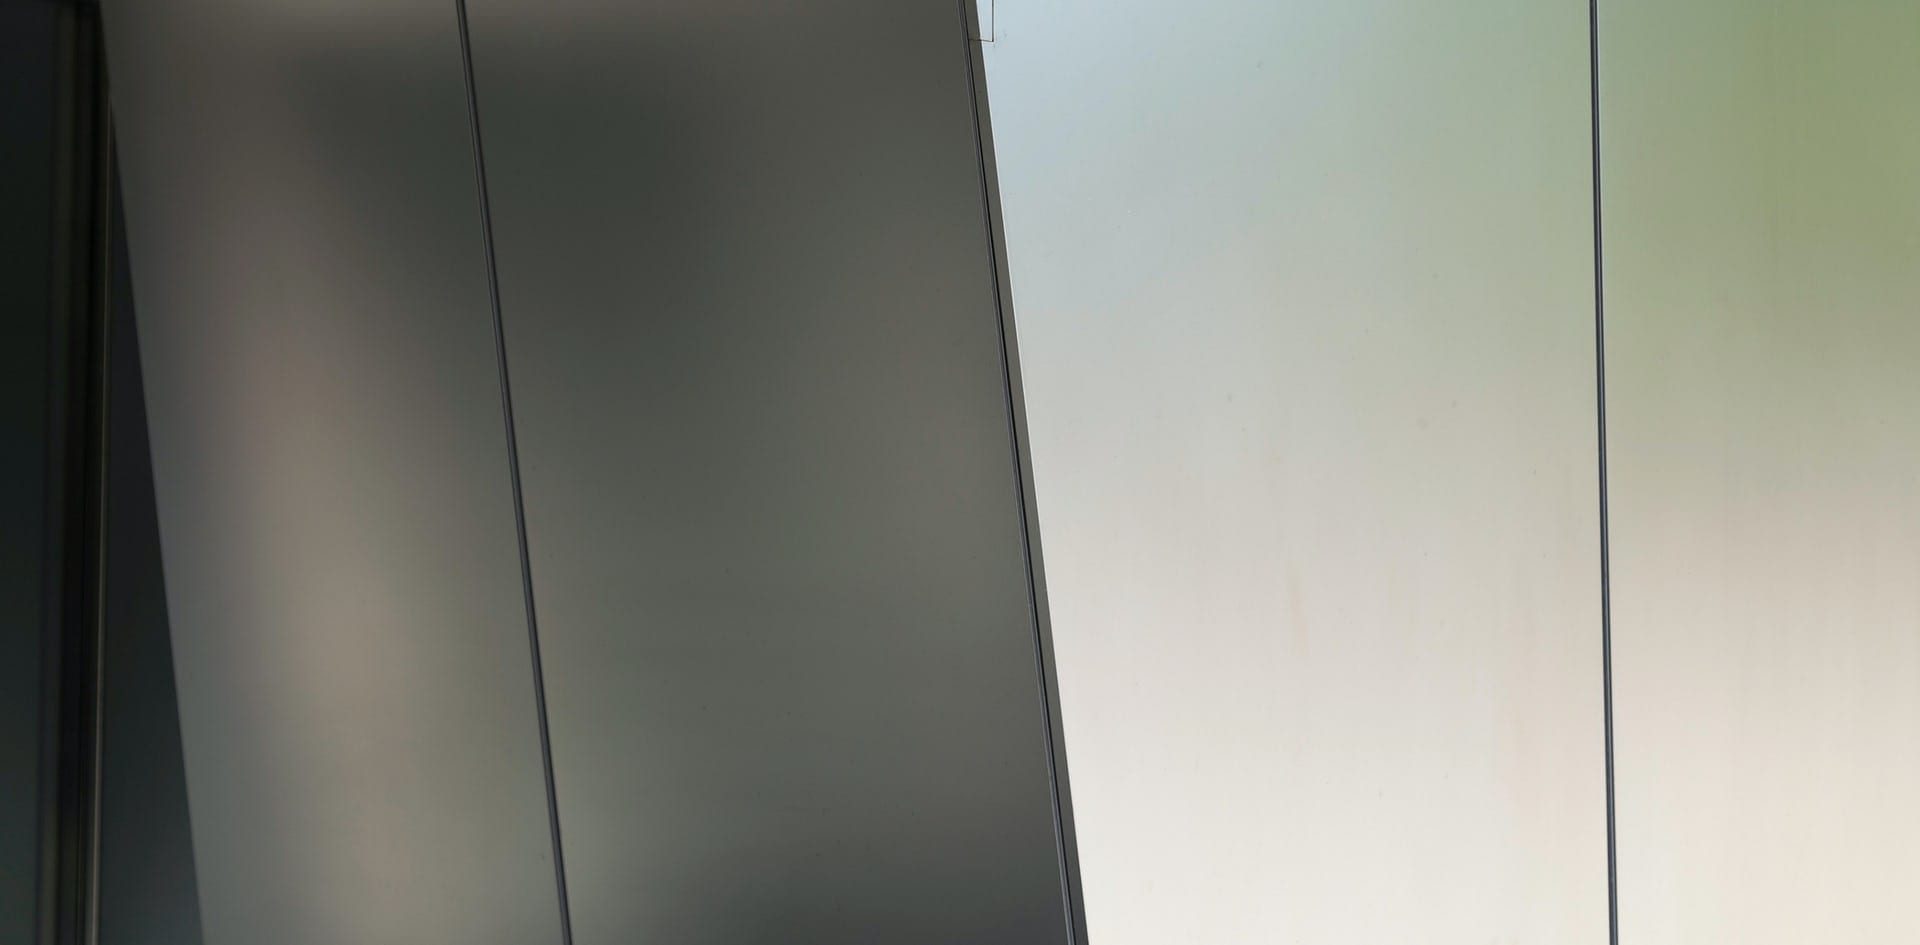 STAINLESS STEEL PLATE WITH GB-60 FINISH USED ON THE IBM HEADQUARTERS IN ARMONK, NEW YORK.